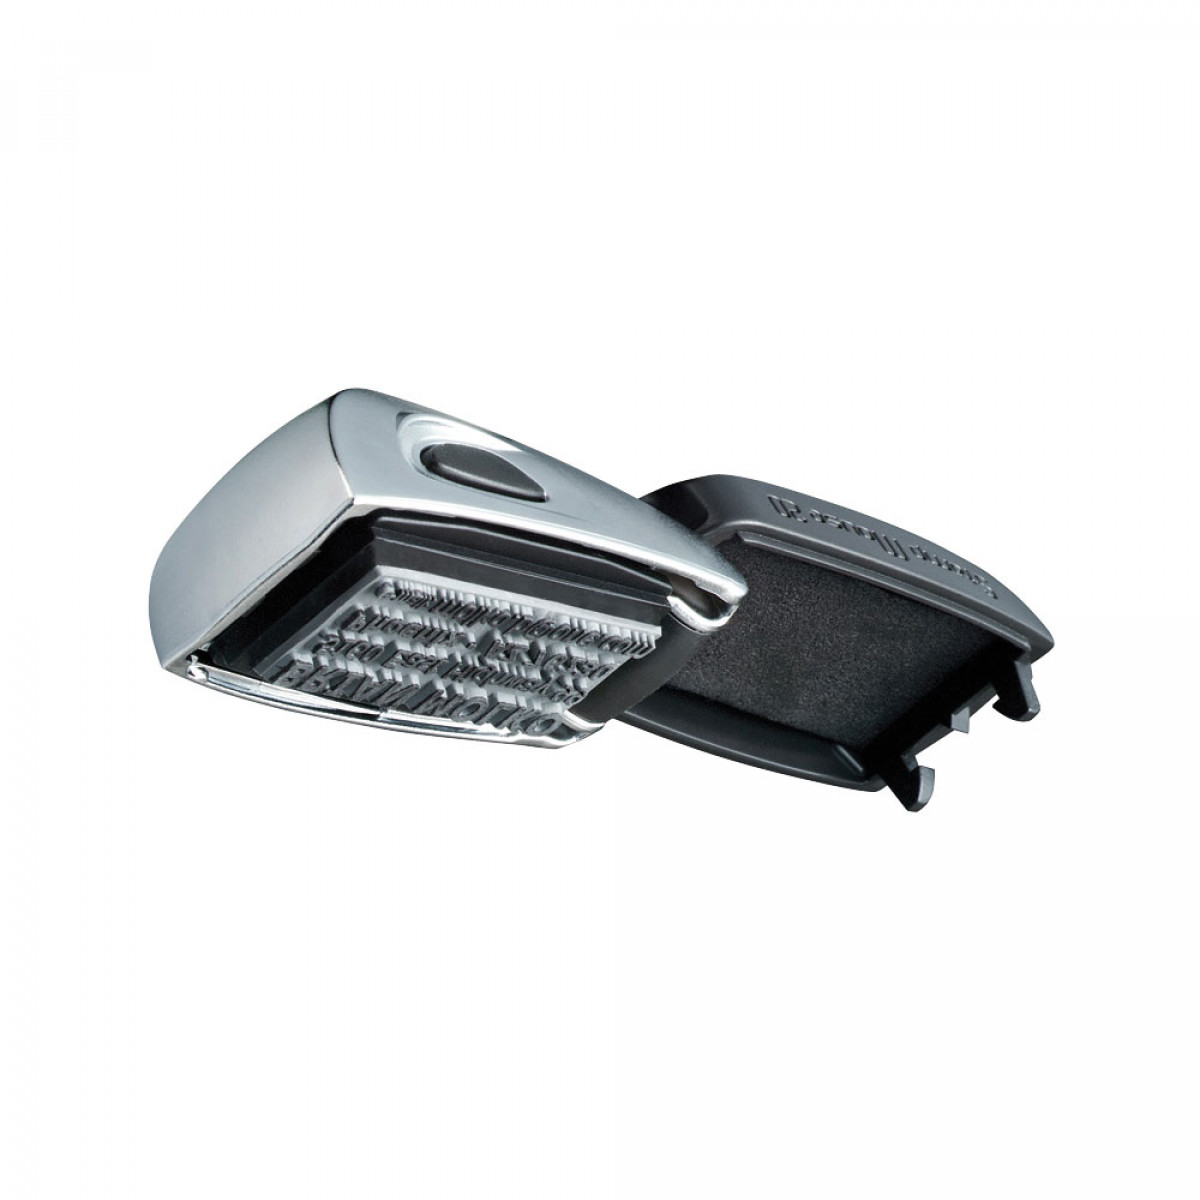 STAMP MOUSE 20 CROMADO